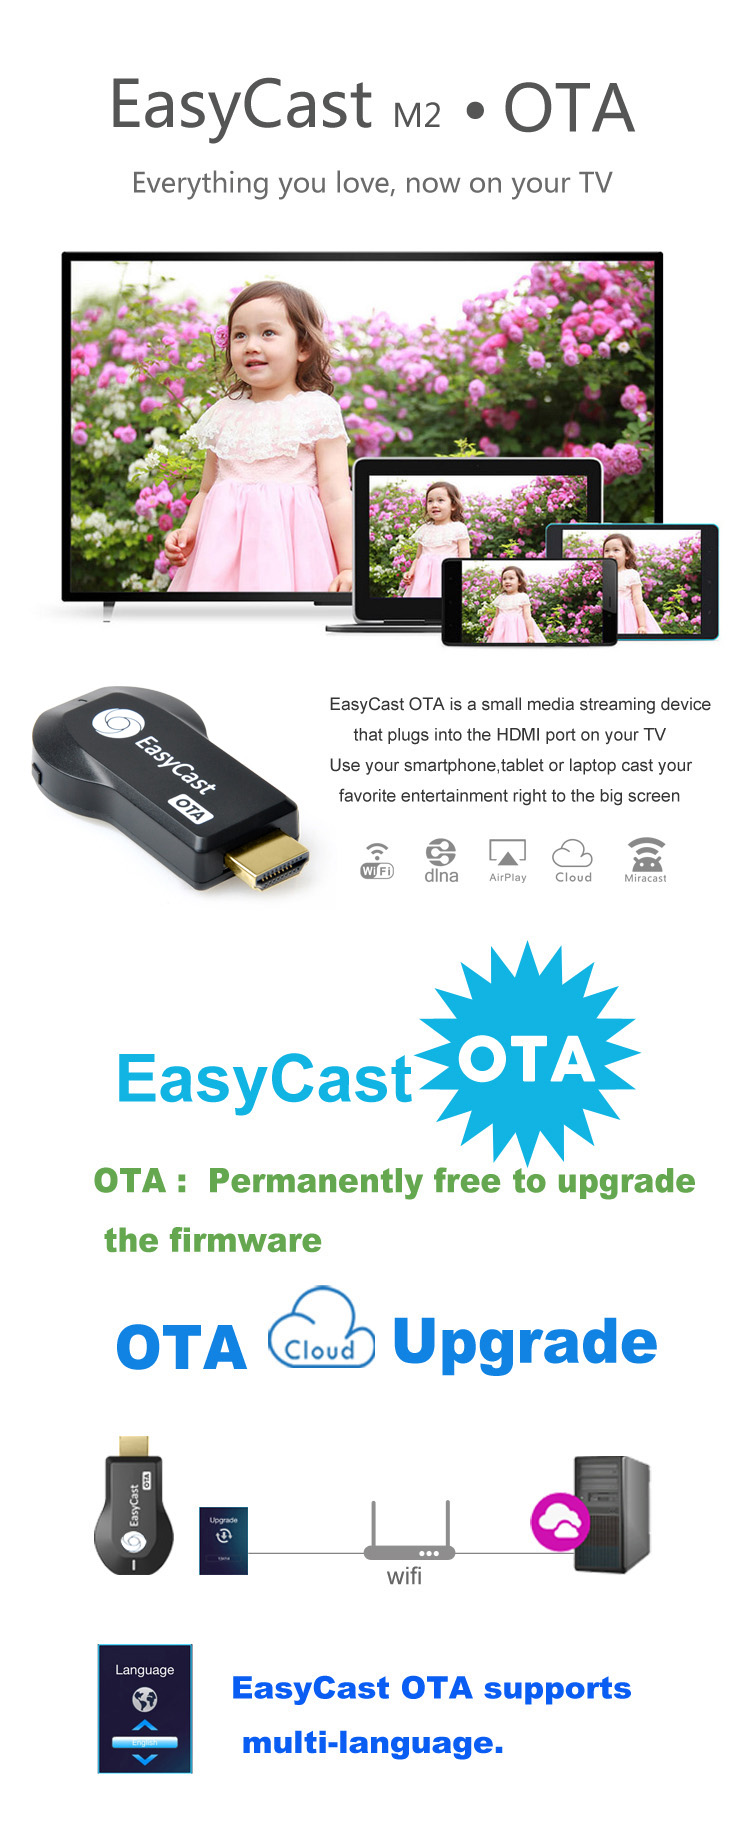 EasyCast OTA 2.4G WiFi Display Dongle HDMI Streaming Media Player for iPhone 6S / 6S Plus / 6 / 6 Plus / iPad Pro / Samsung S6 / Edge S6 / HTC ONE M9 / HUAWEI P8